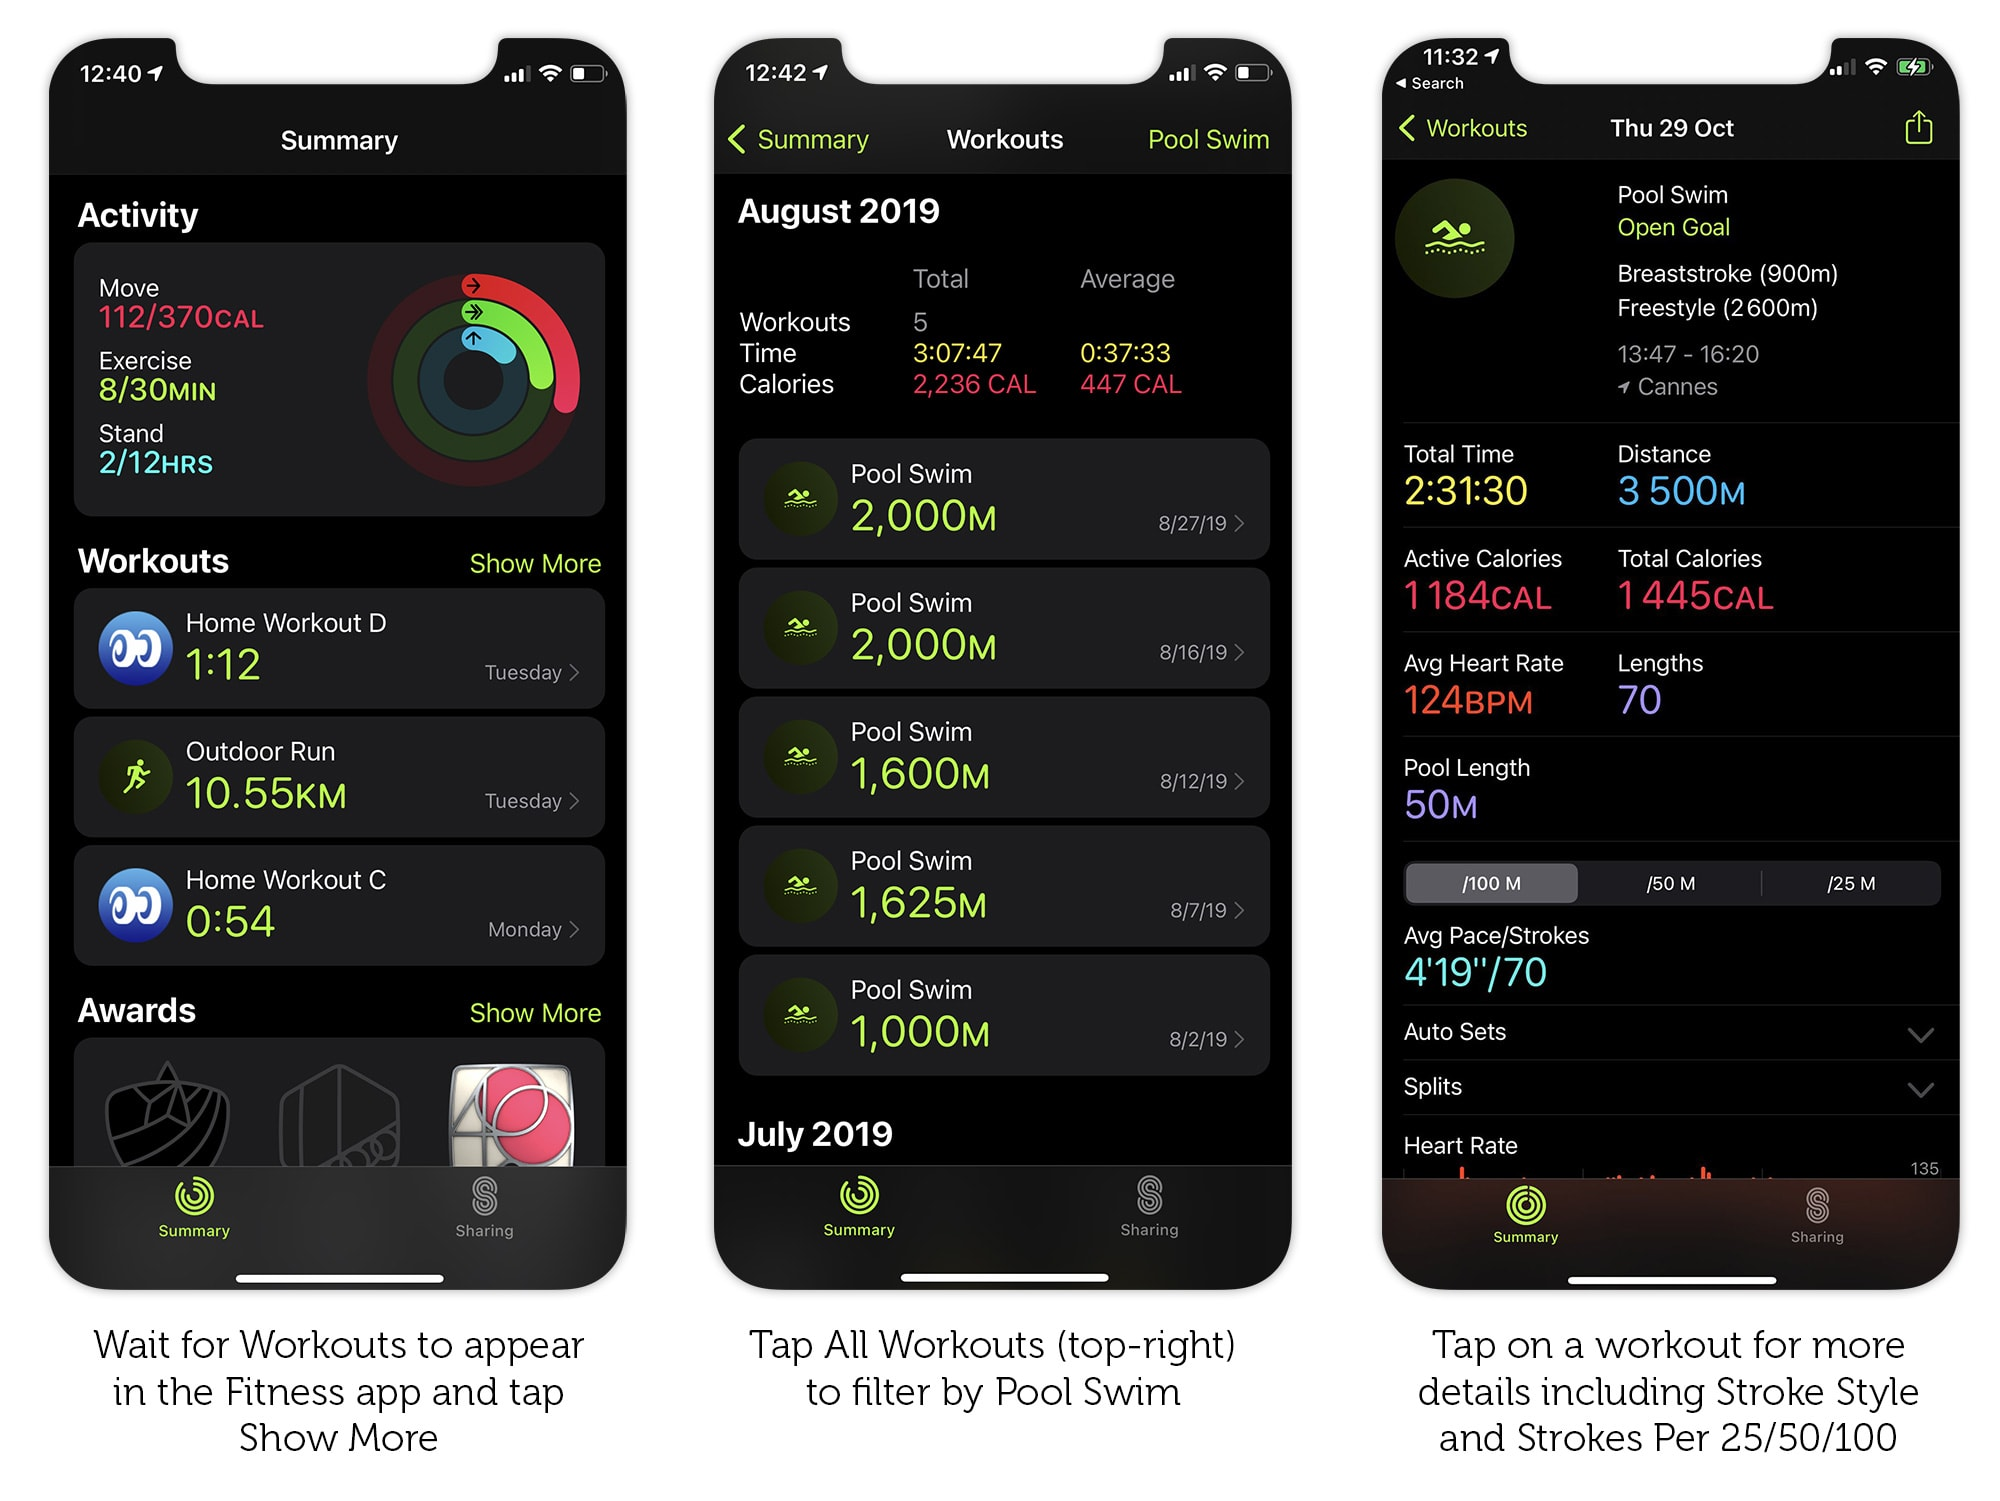 View details of your swim workout in the Fitness app